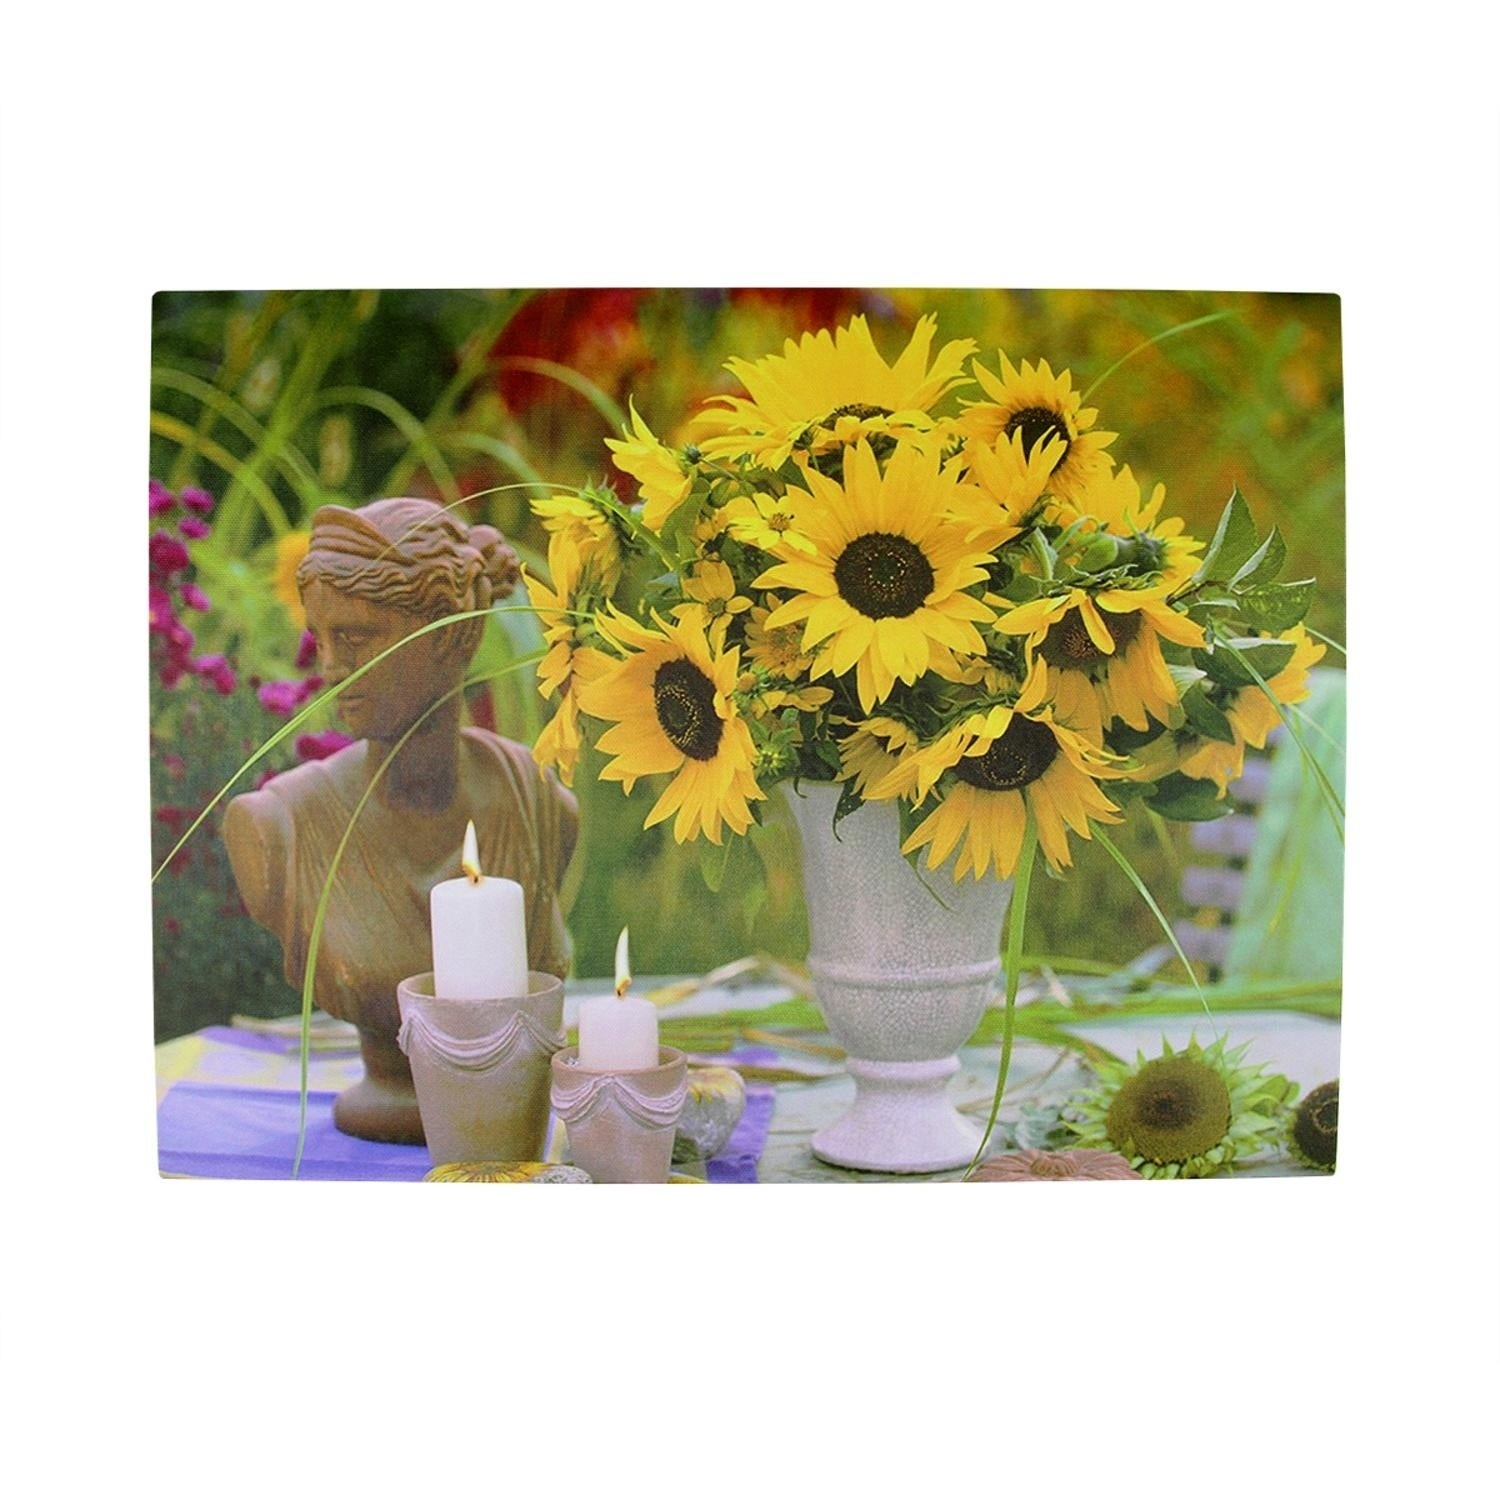 Shop LED Lighted Flickering Garden Candles and Sunflower Vase Canvas ...